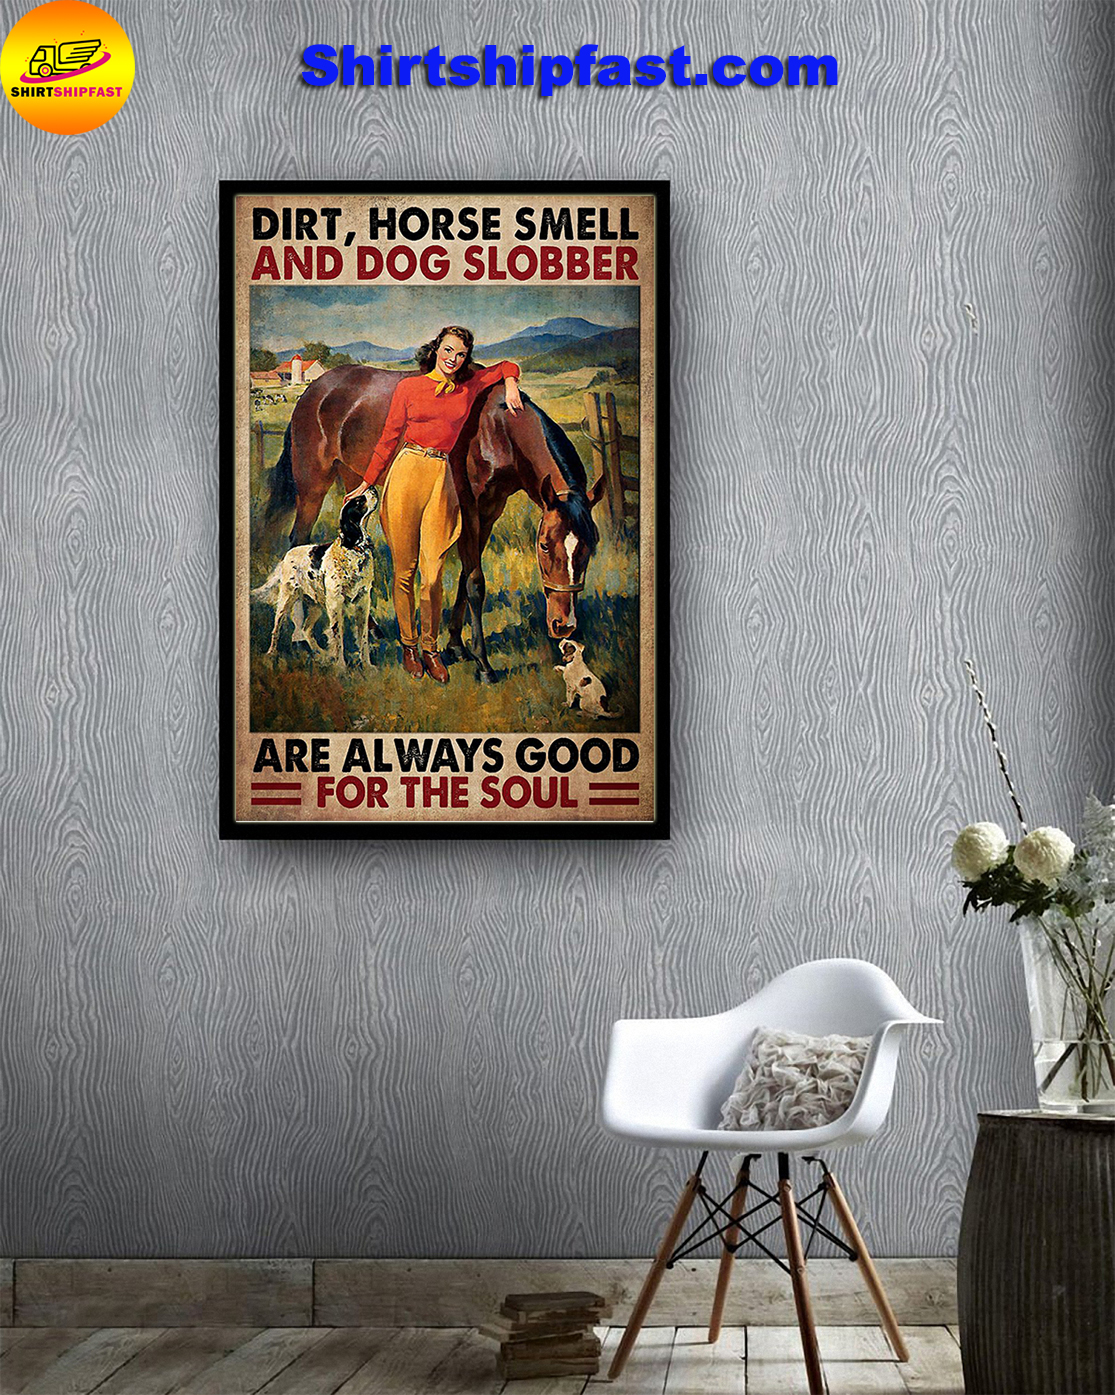 Dirt horse smell and god slobber are always good for the sould poster - Picture 3